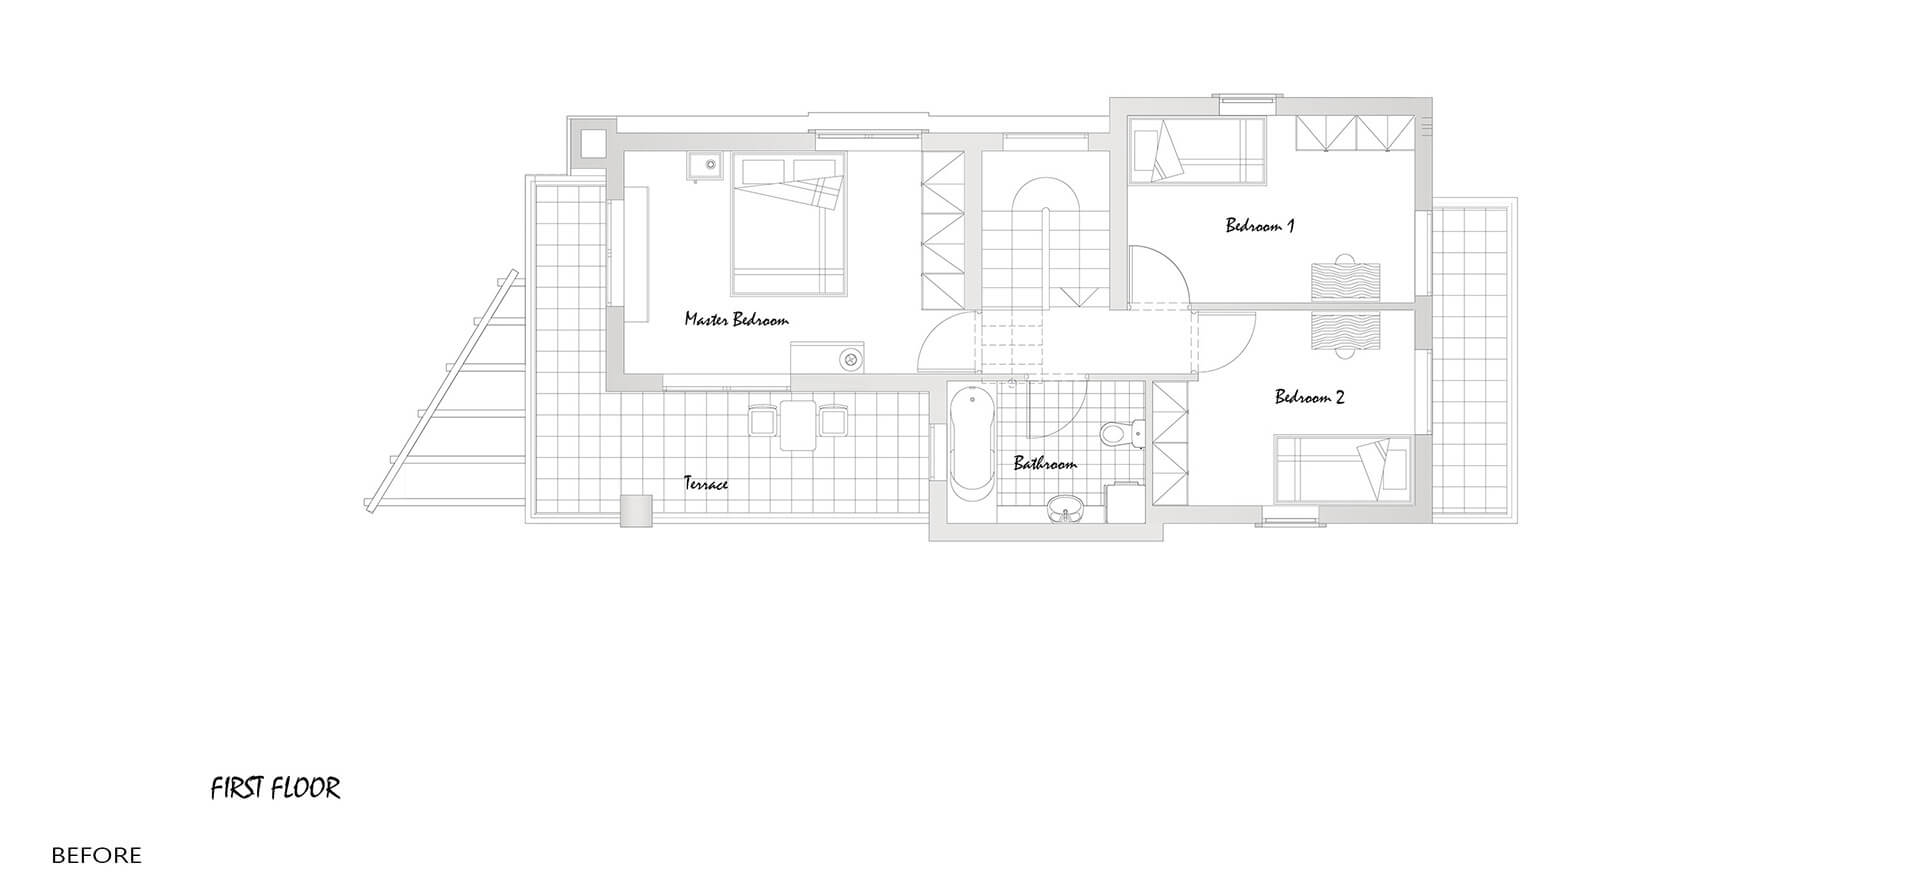 Before-1ST FLOOR PLAN